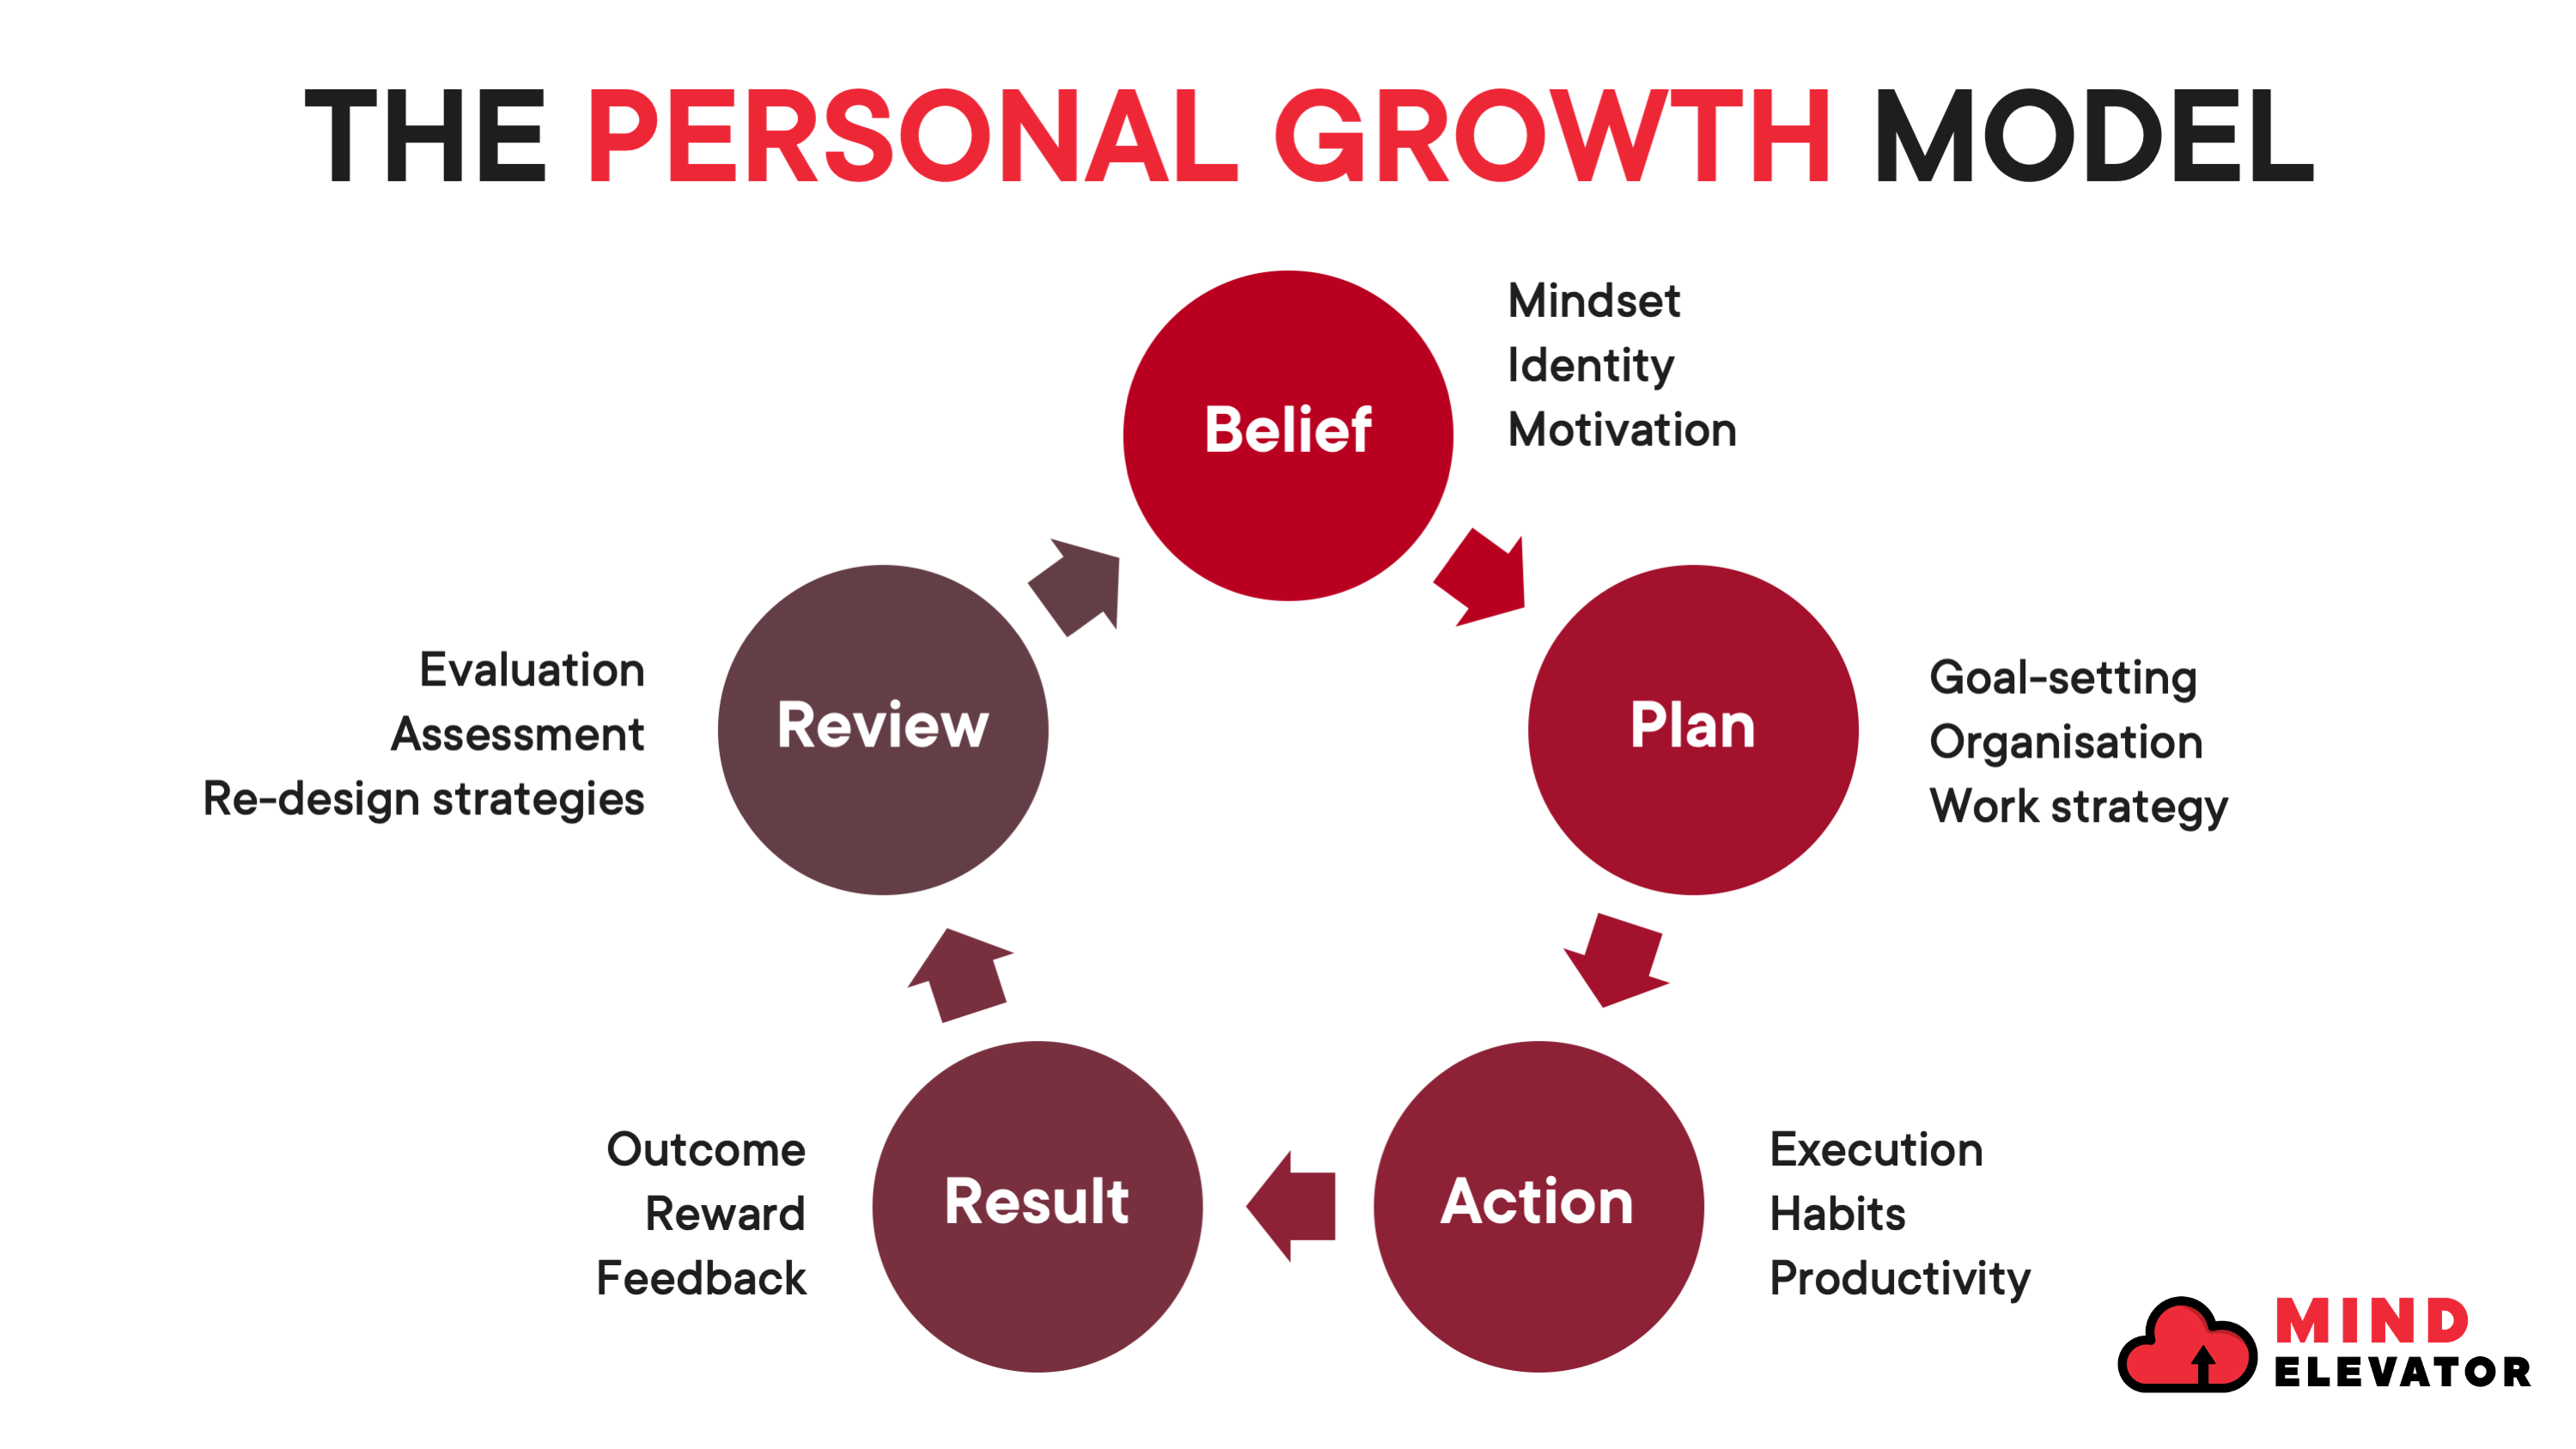 The Personal Growth Model includes five key steps - belief, plan, action, result and review.